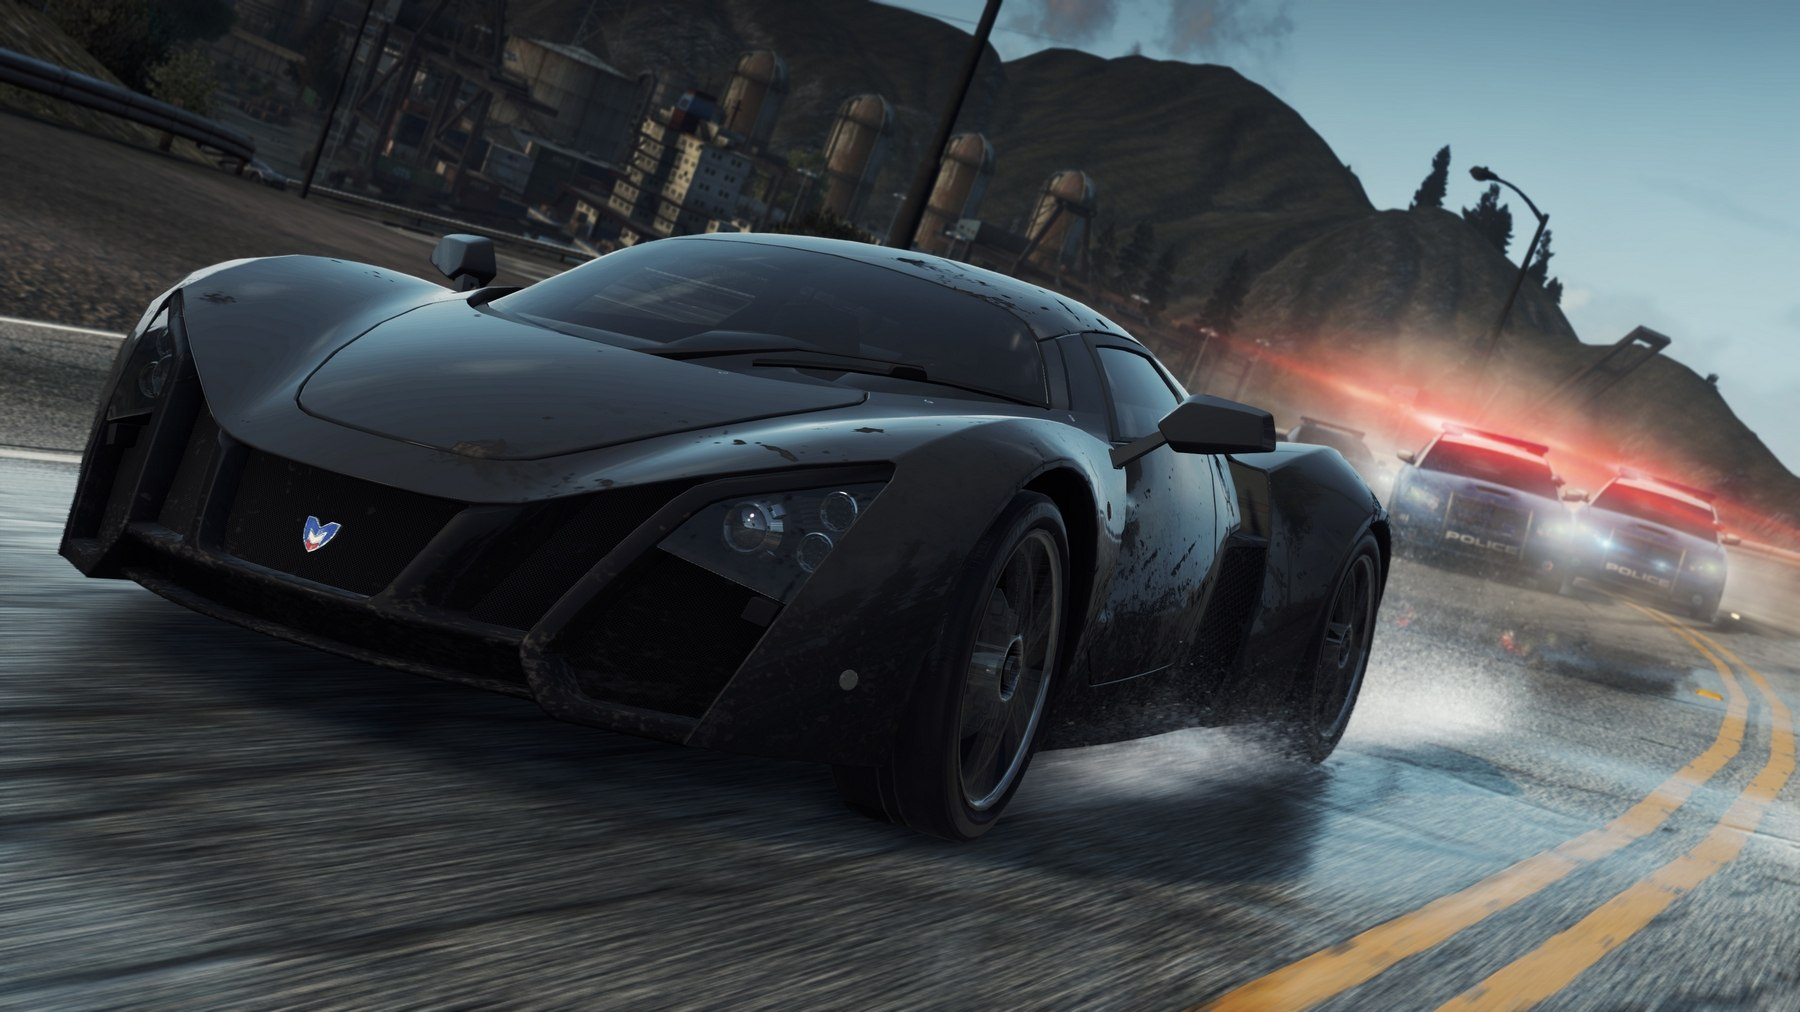 Marussia B2 | Need for Speed Wiki | FANDOM powered by Wikia